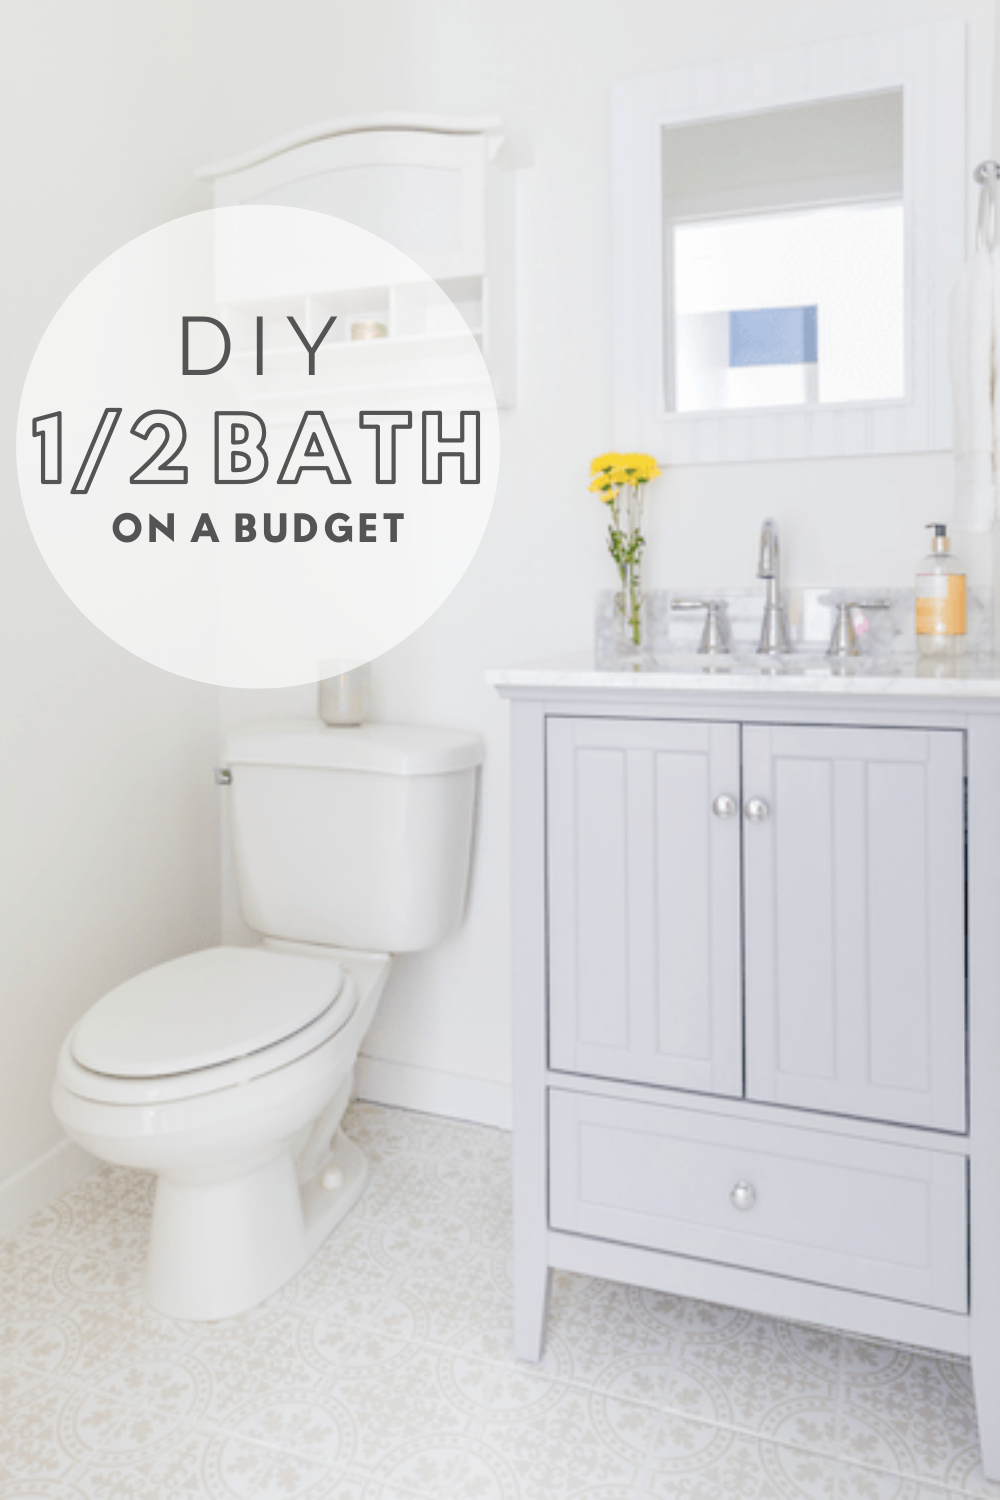 Diy Budget Half Bath Transformation In 2020 Diy On A Budget Diy Bathroom Diy Renovation